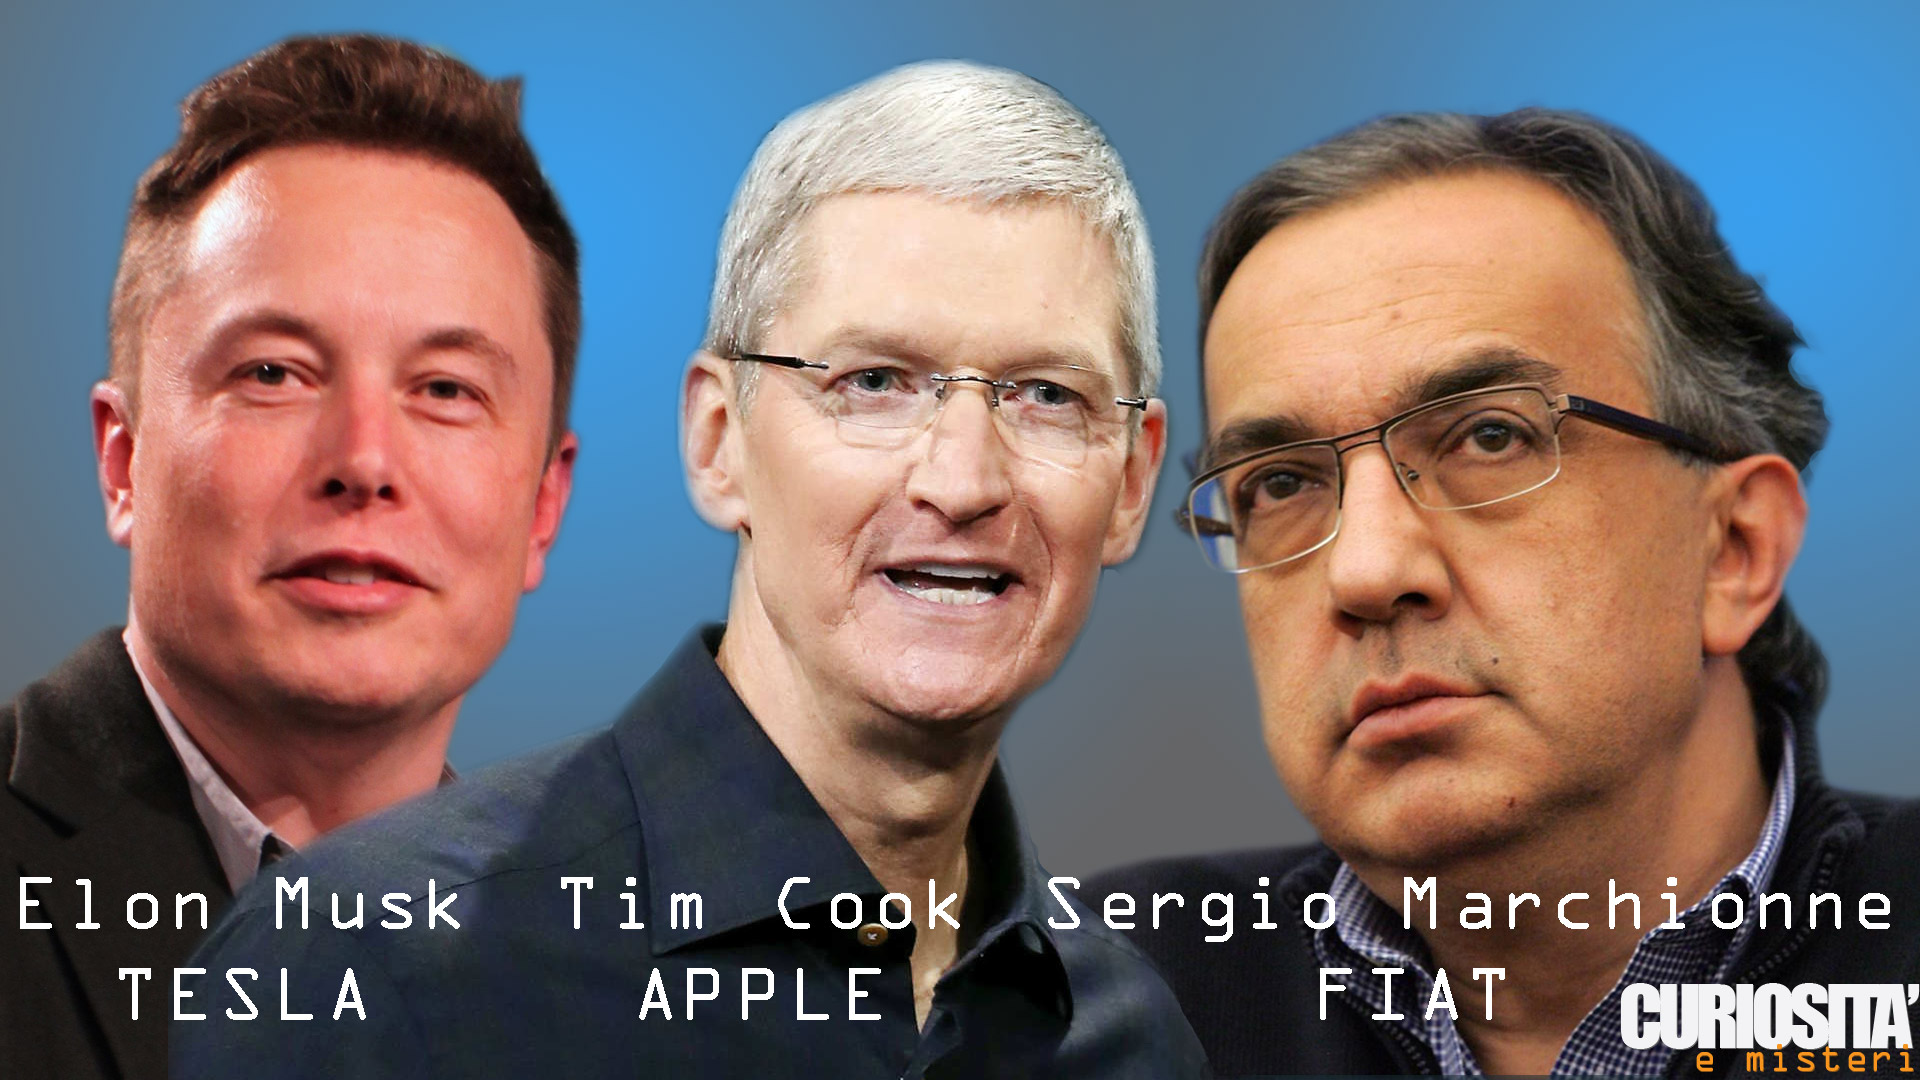 cook musk marchionne